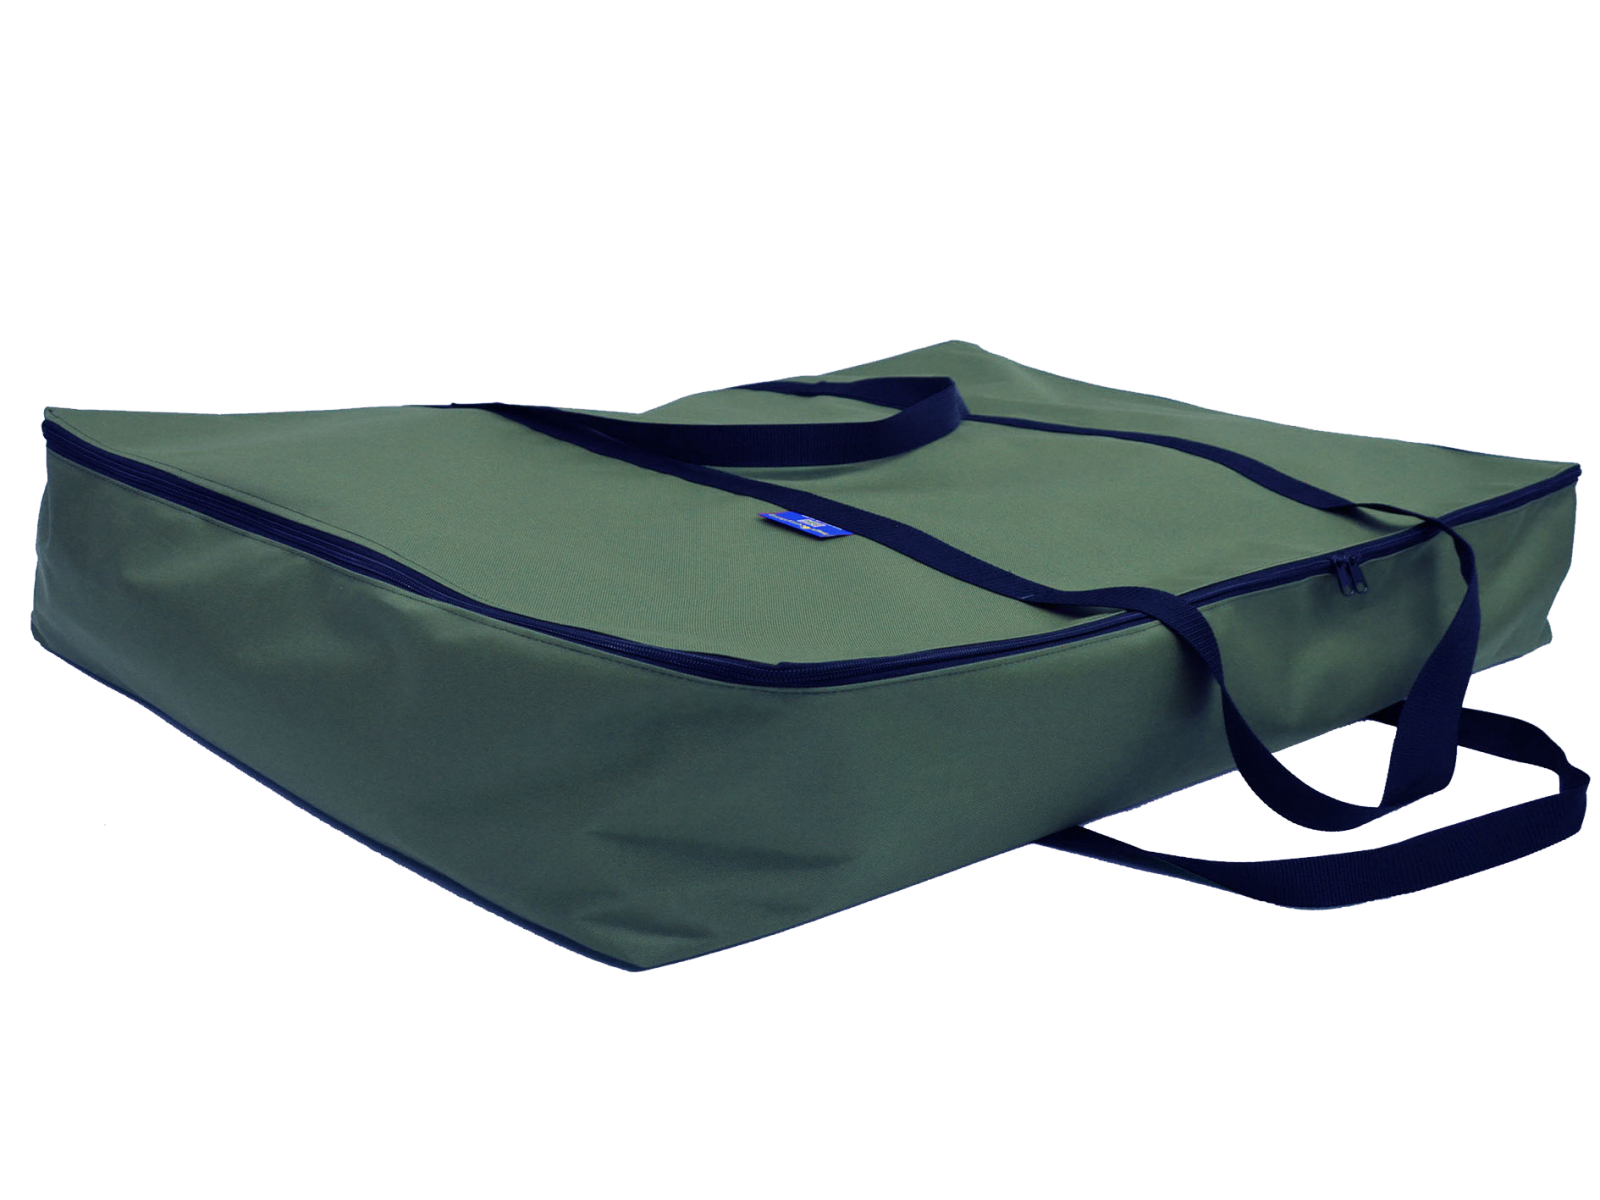 Awning Bag Cover Large Waterproof With Zip And Handles